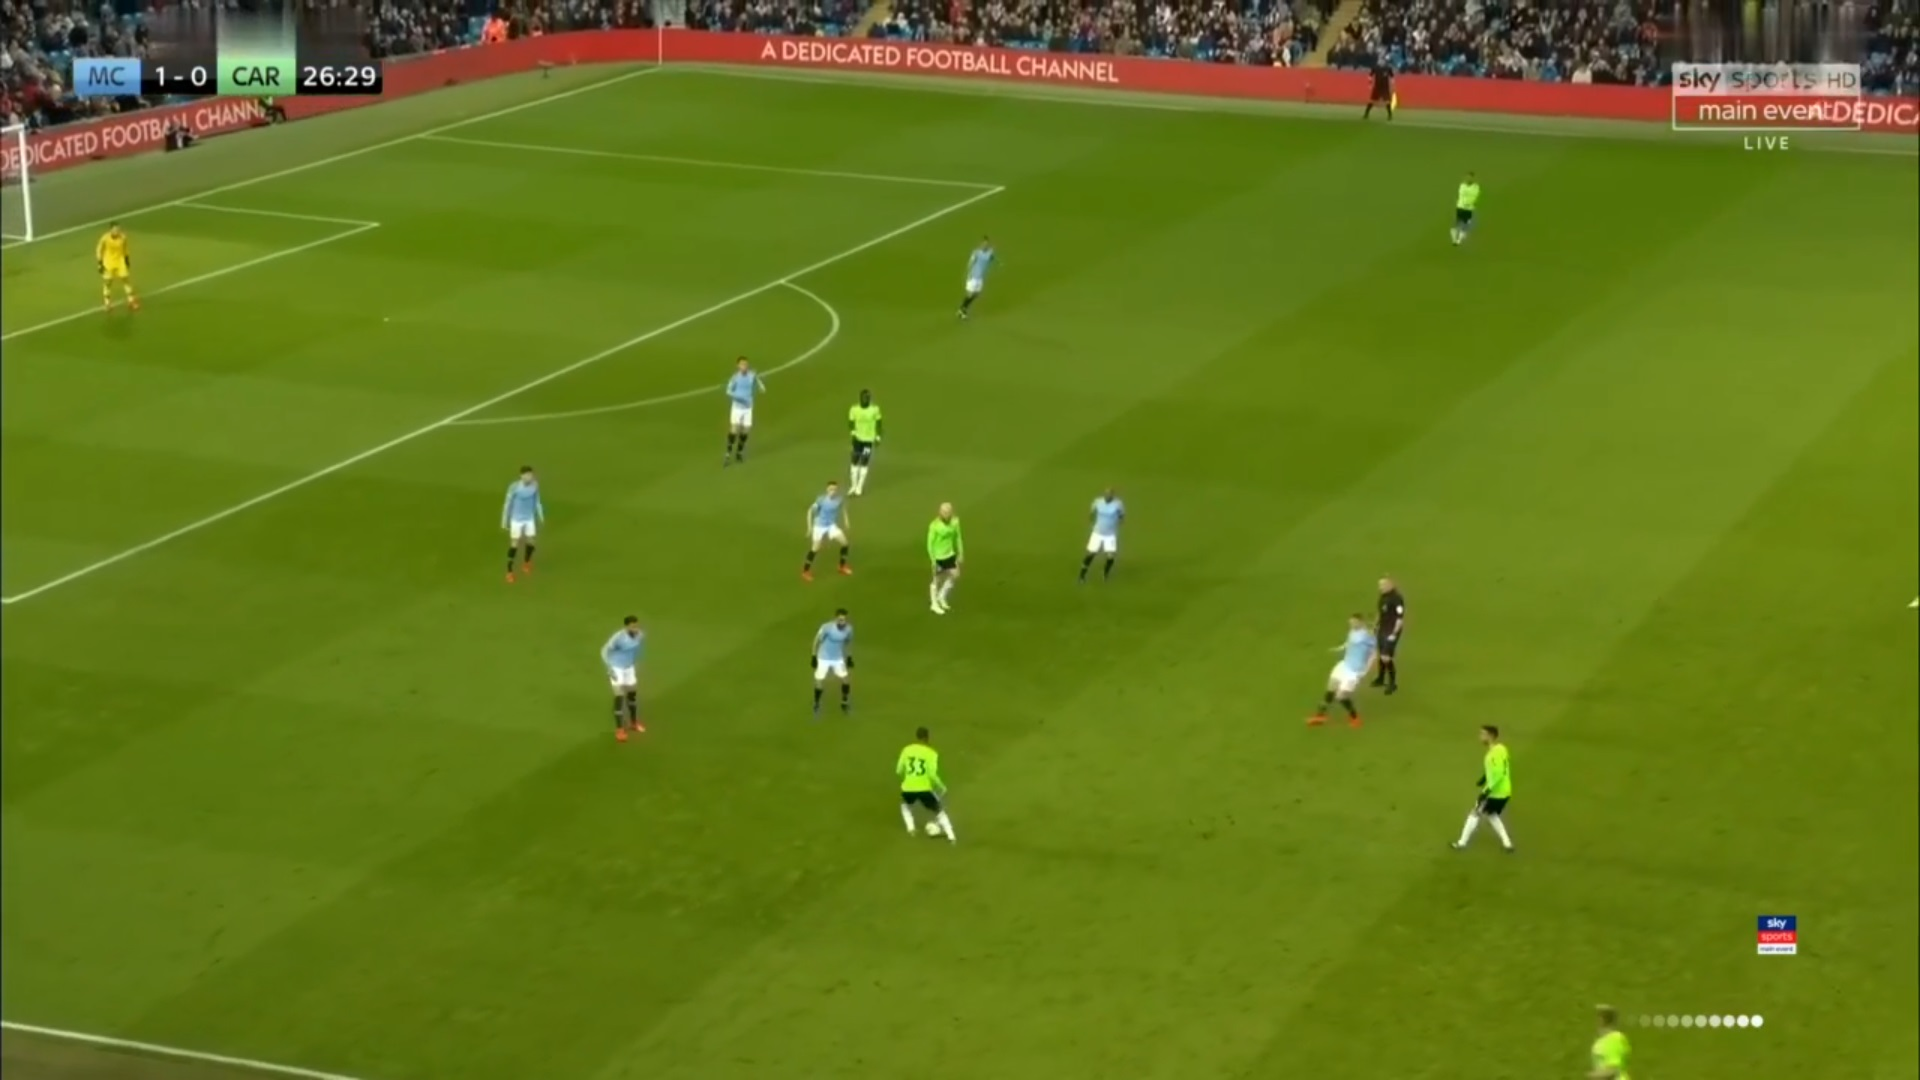 Premier League 2018/19: Manchester City vs Cardiff City Tactical Analysis